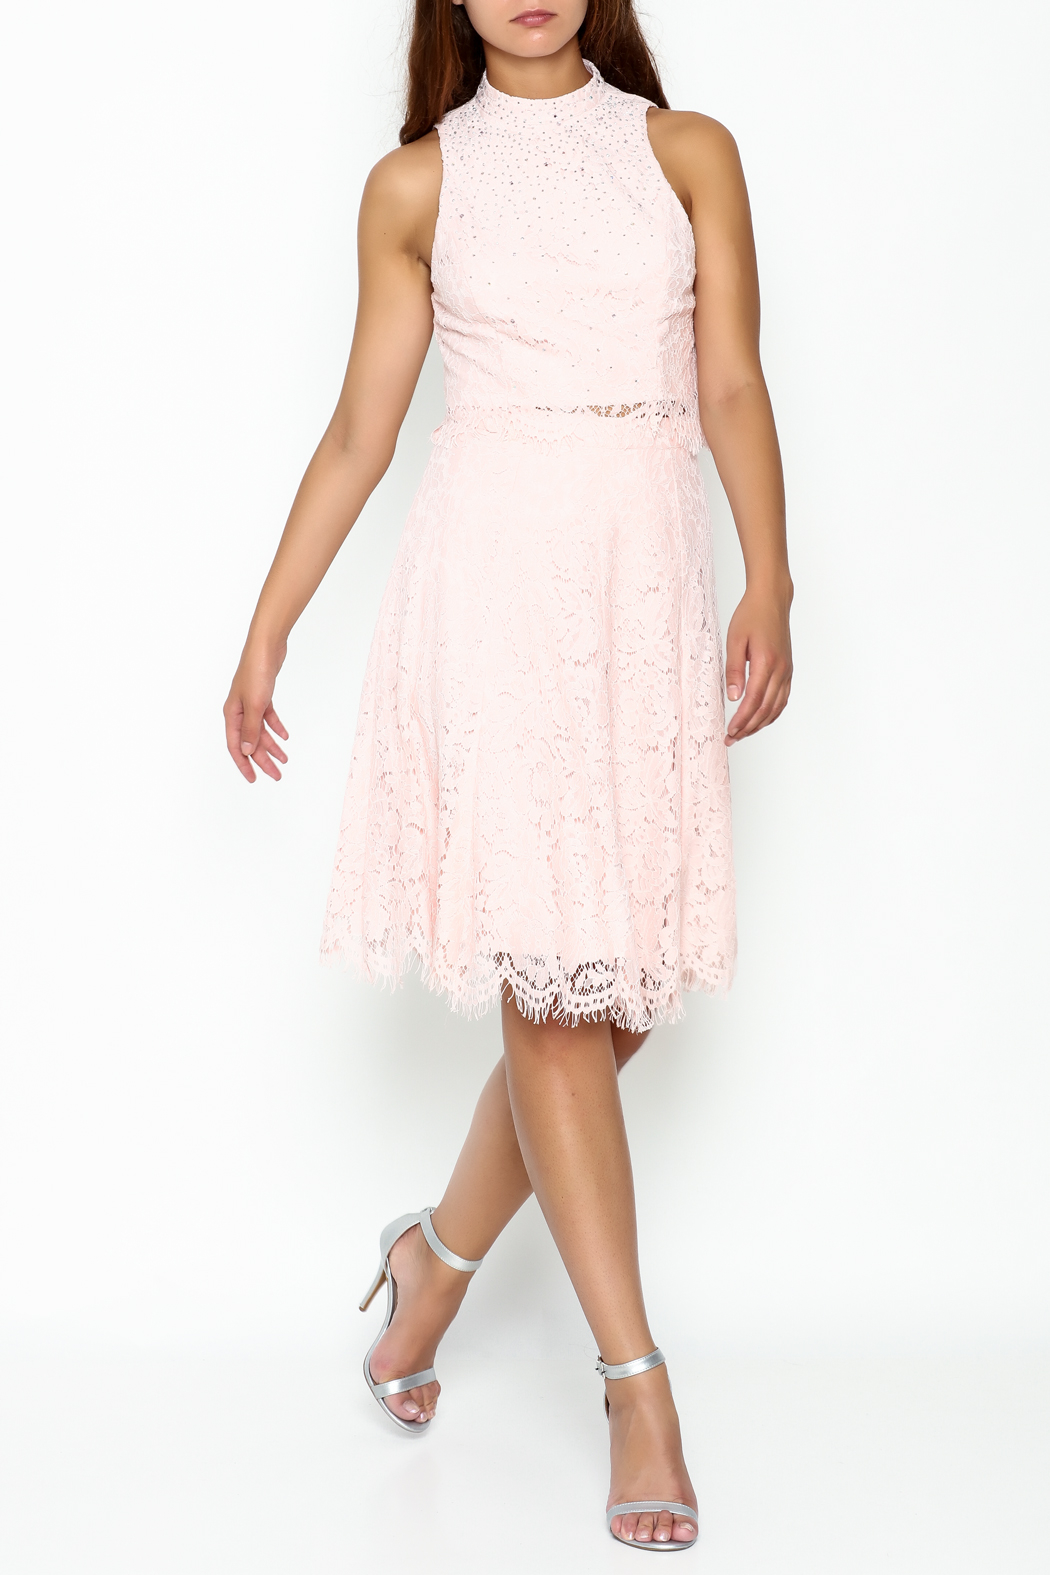 Nikibiki Lace Two Piece Dress - Main Image